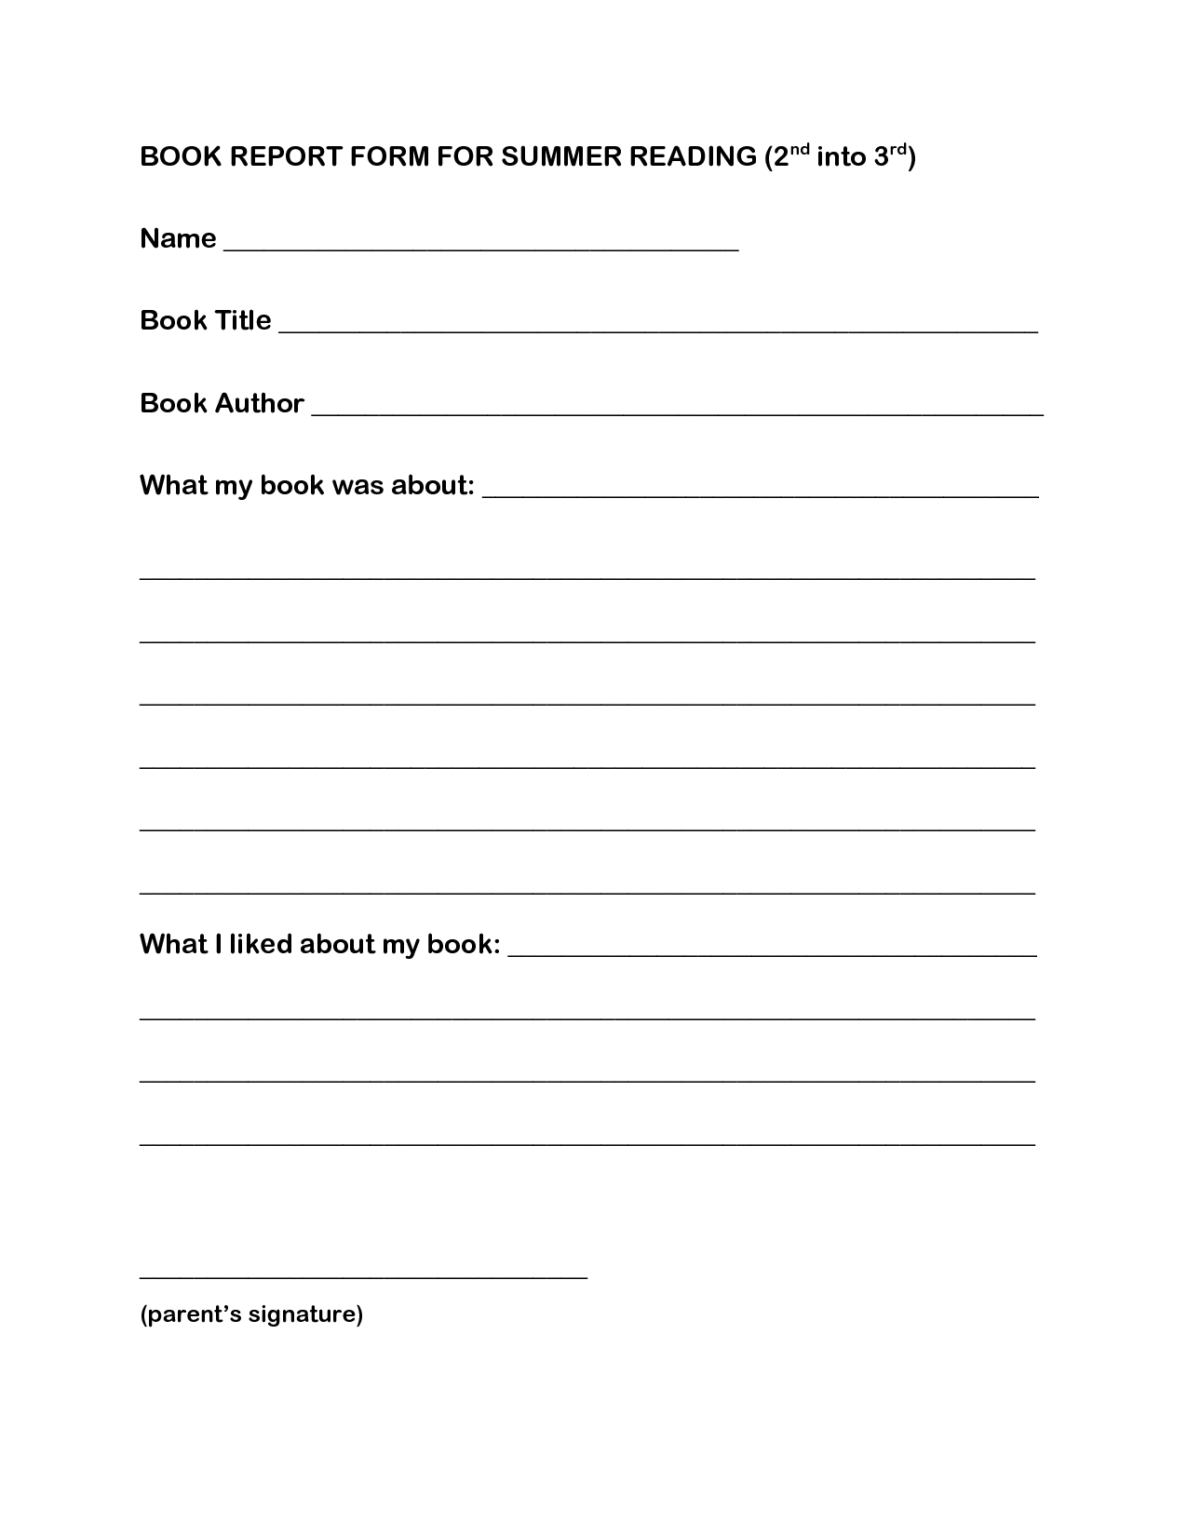 Worksheet Book Report